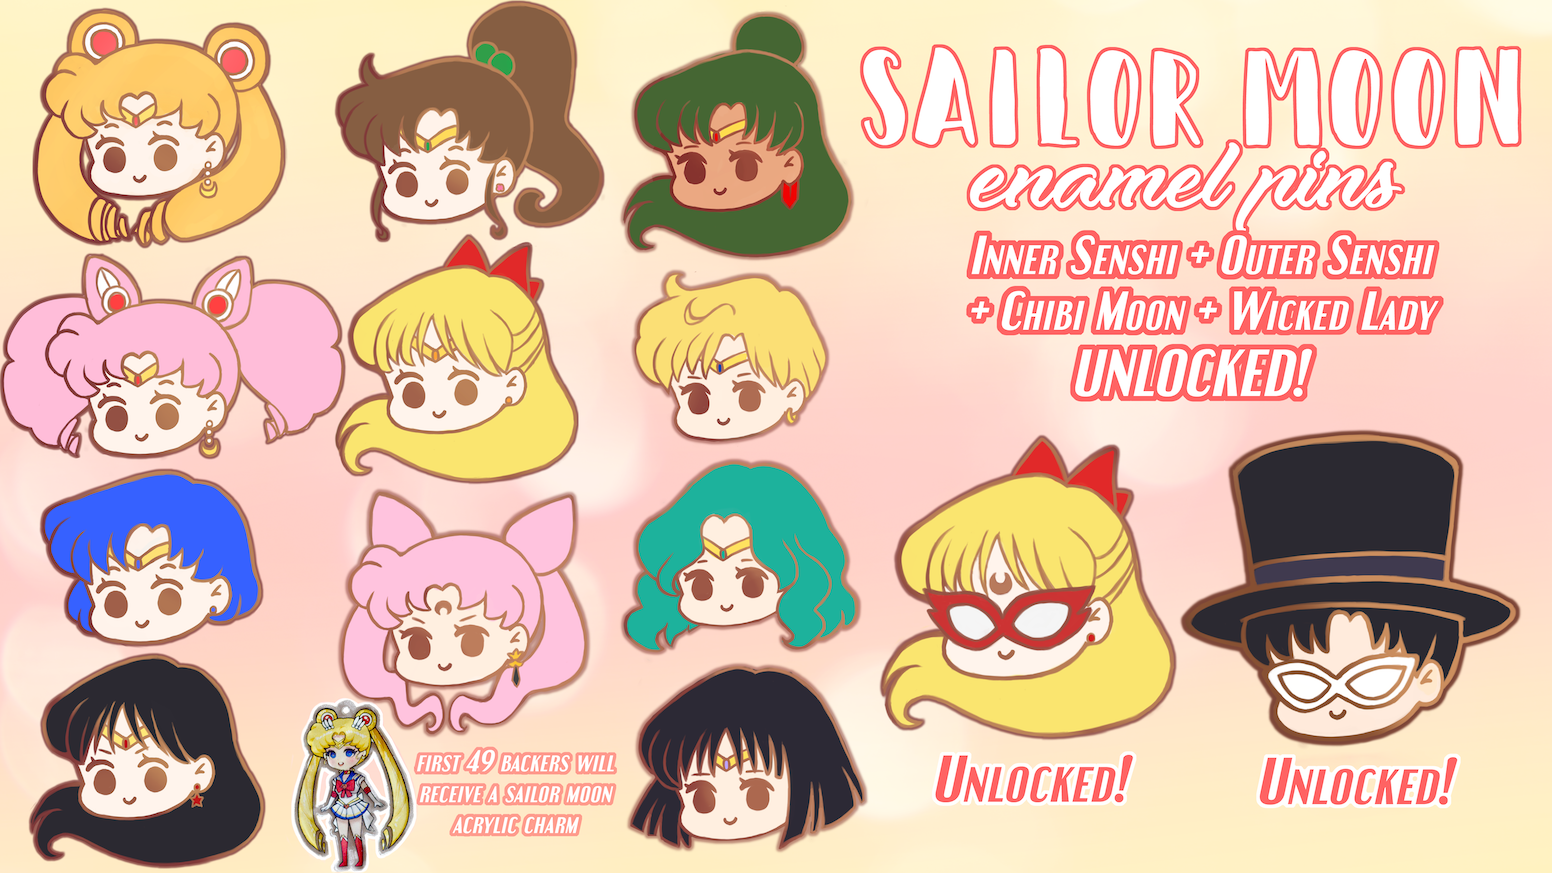 Hoping to bring these Sailor Moon enamel pins to life!